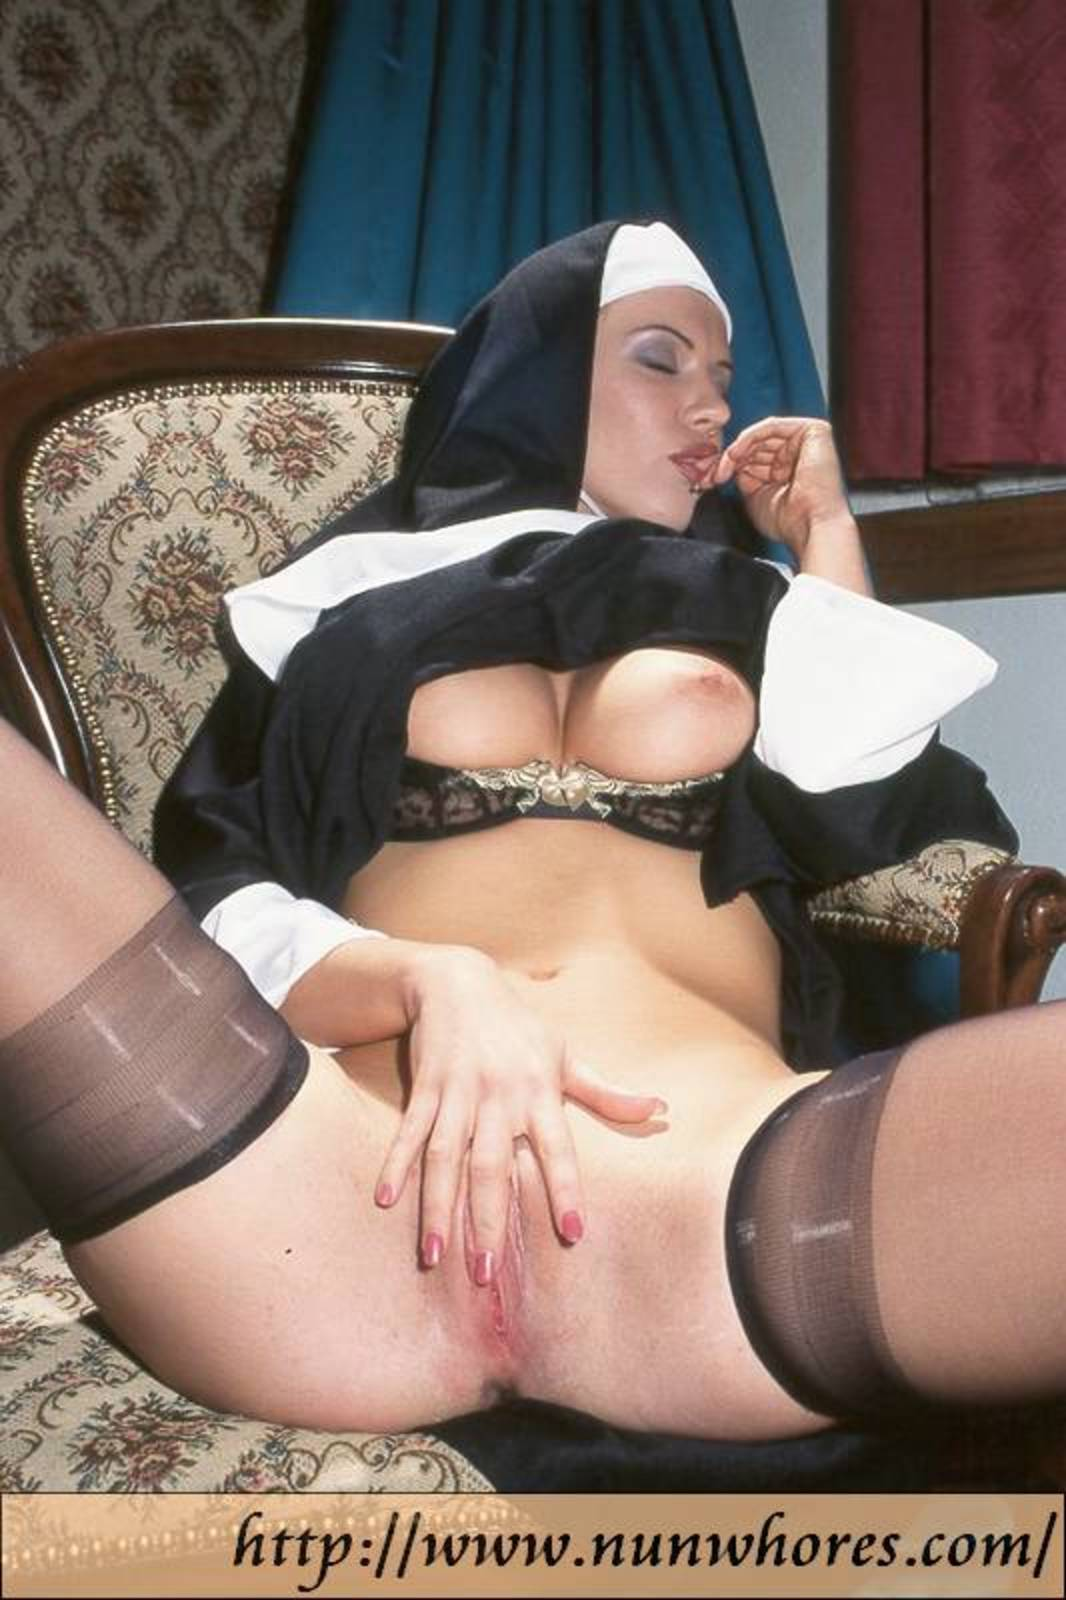 Nuns sex photos sexy clip